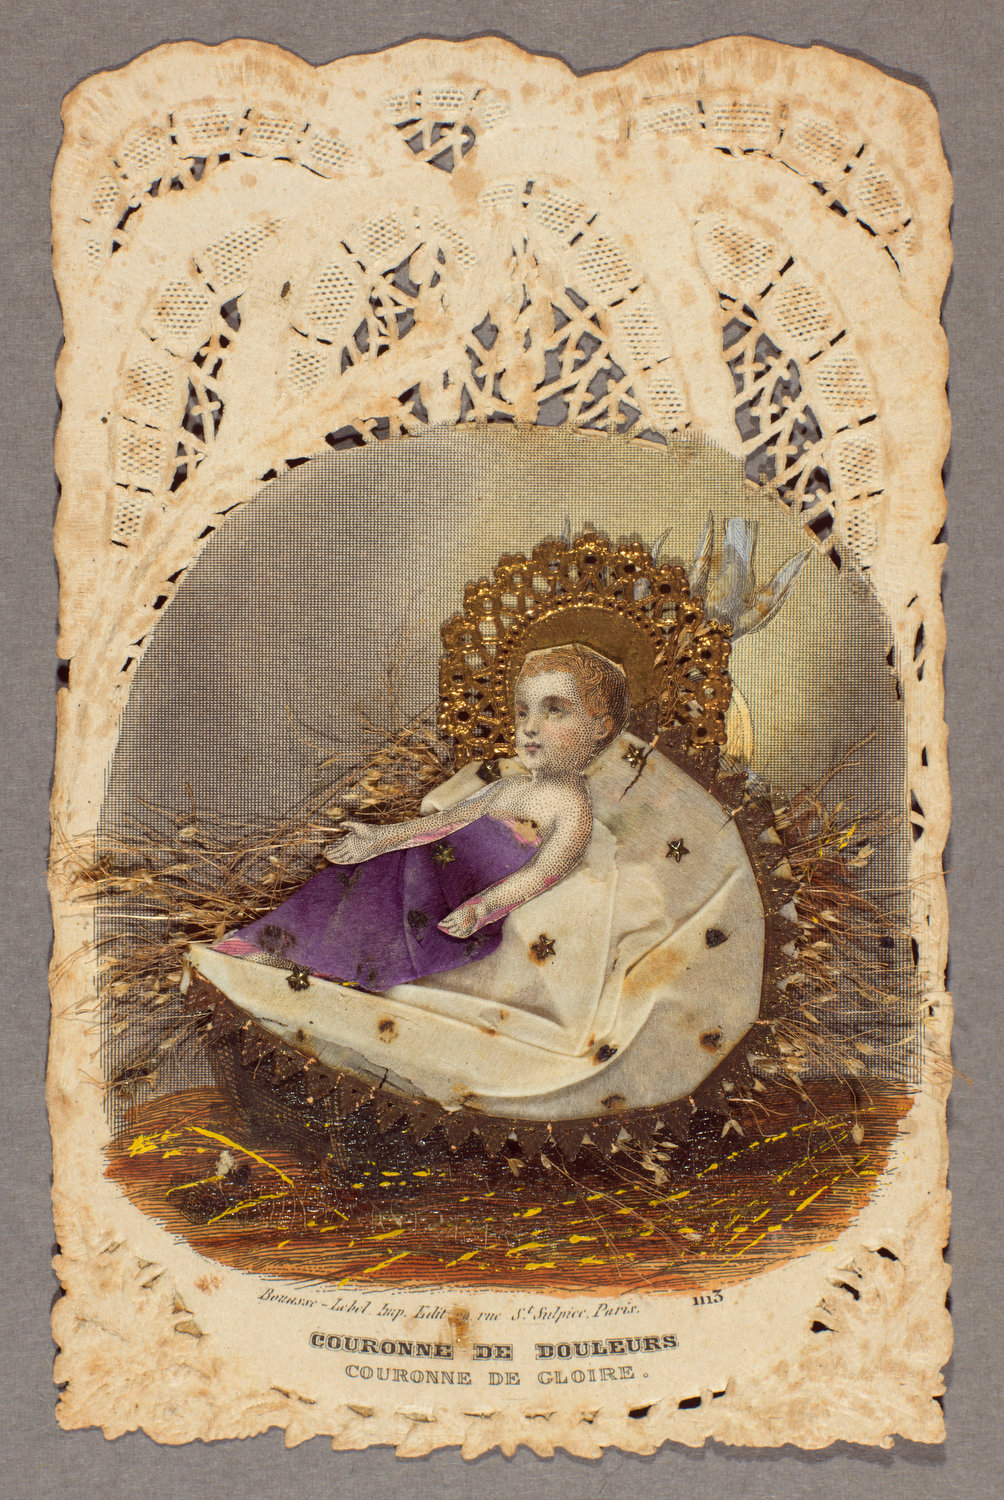 """A devotional card made in Paris in the mid-1800s that reads, """"Crown of sorrows, crown of glory."""" The image is engraved on lace paper, with applied elements including die-cut and gilded scraps, tissue and dried flowers."""